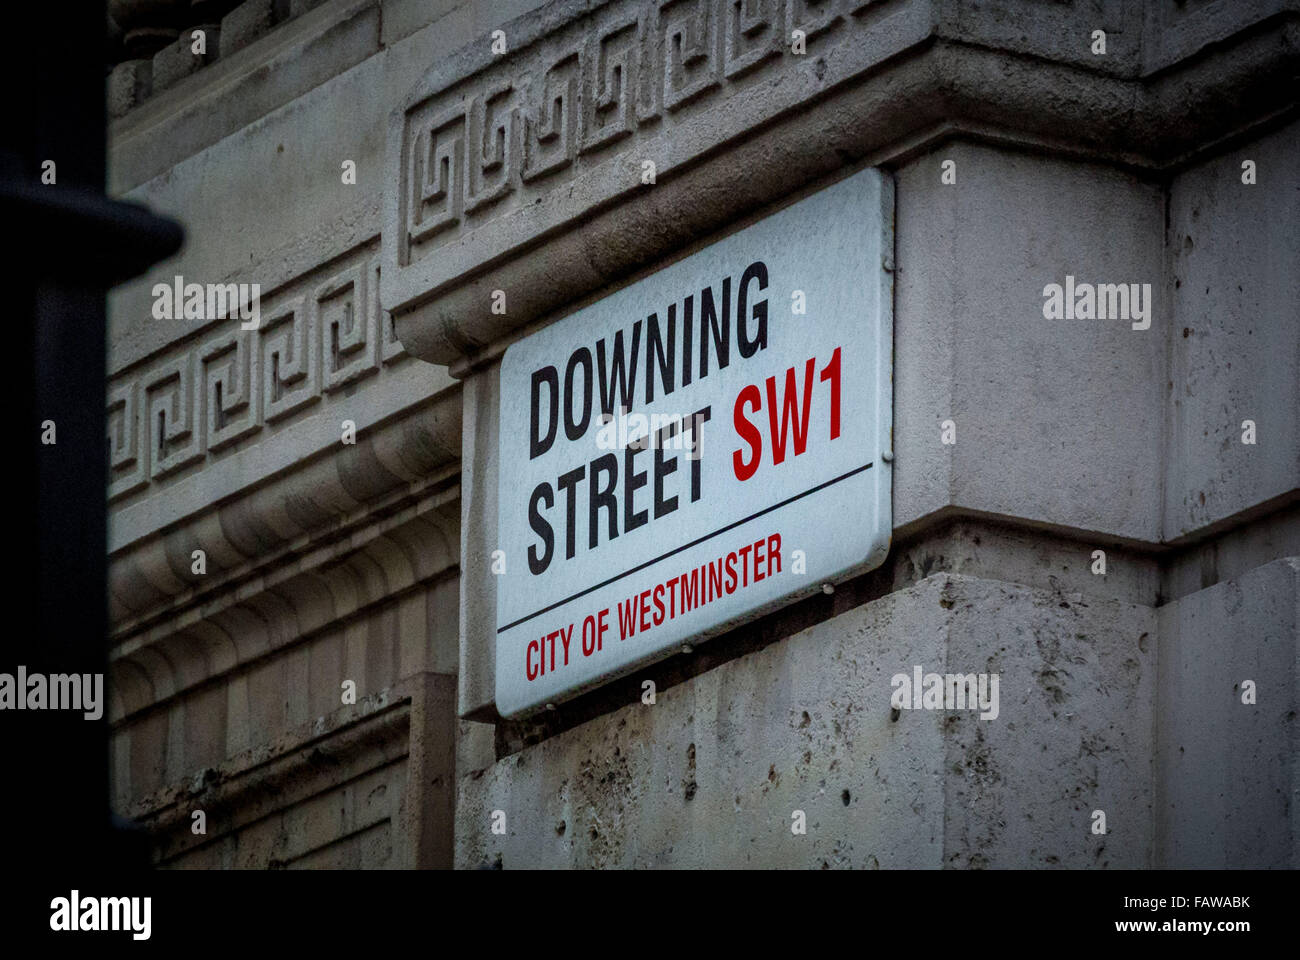 Downing Street SW1, city of Westminster, sign in London, UK. - Stock Image